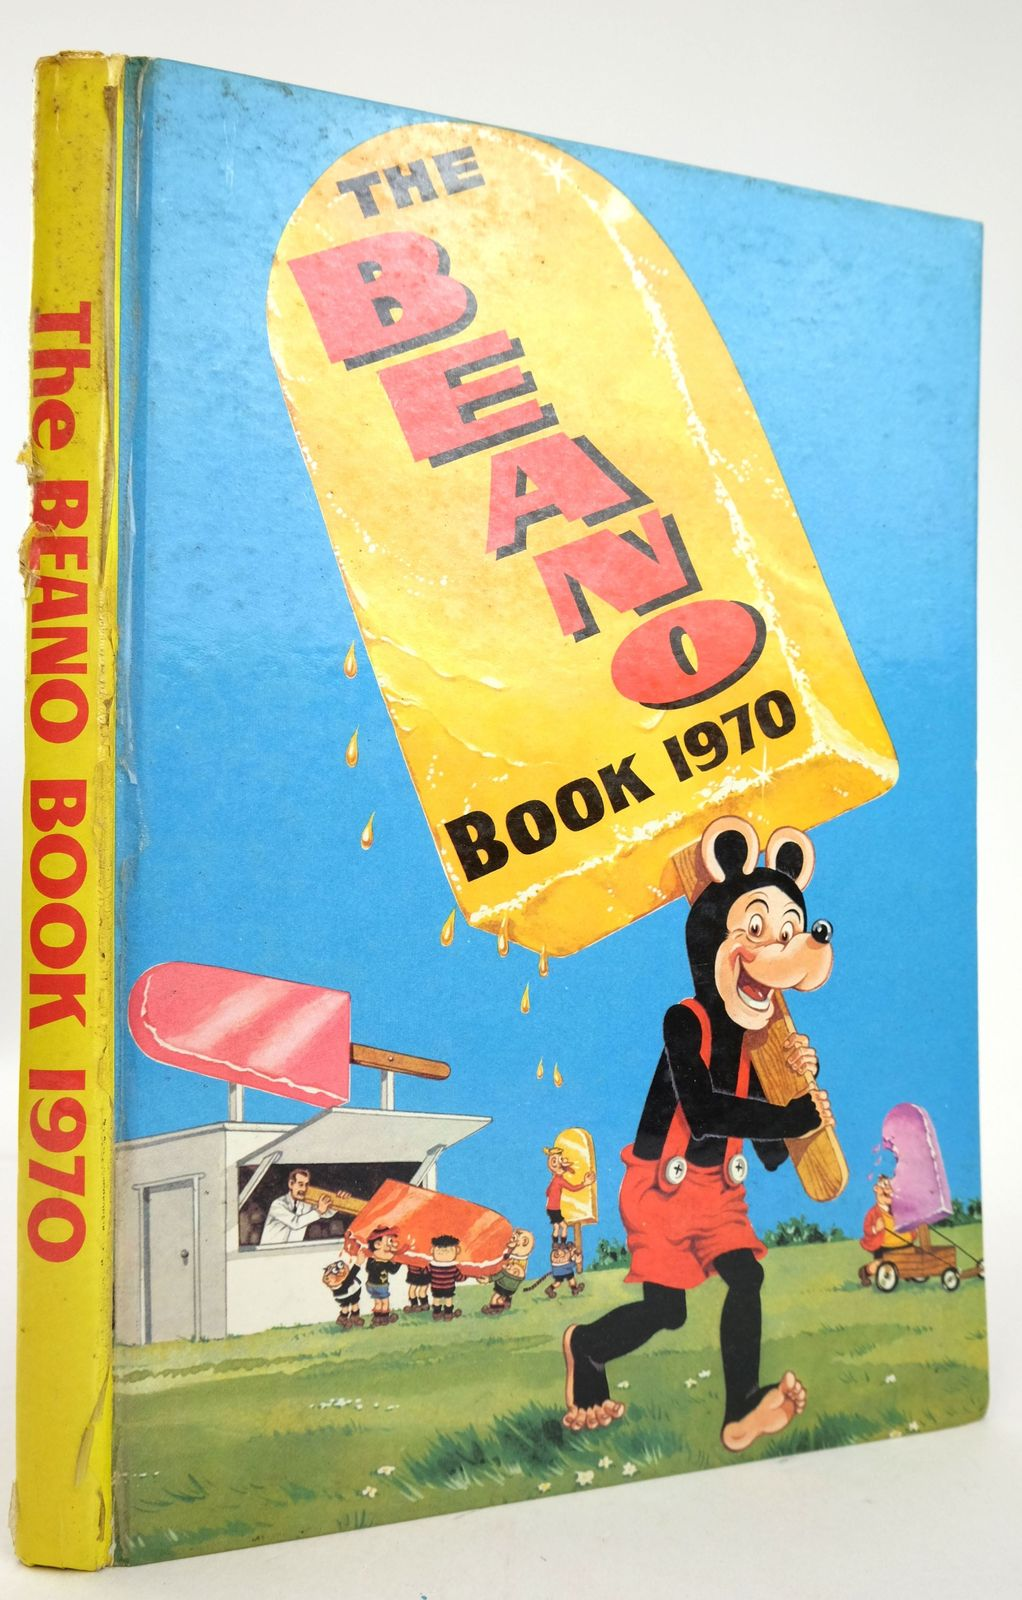 Photo of THE BEANO BOOK 1970 published by D.C. Thomson & Co Ltd. (STOCK CODE: 1819560)  for sale by Stella & Rose's Books